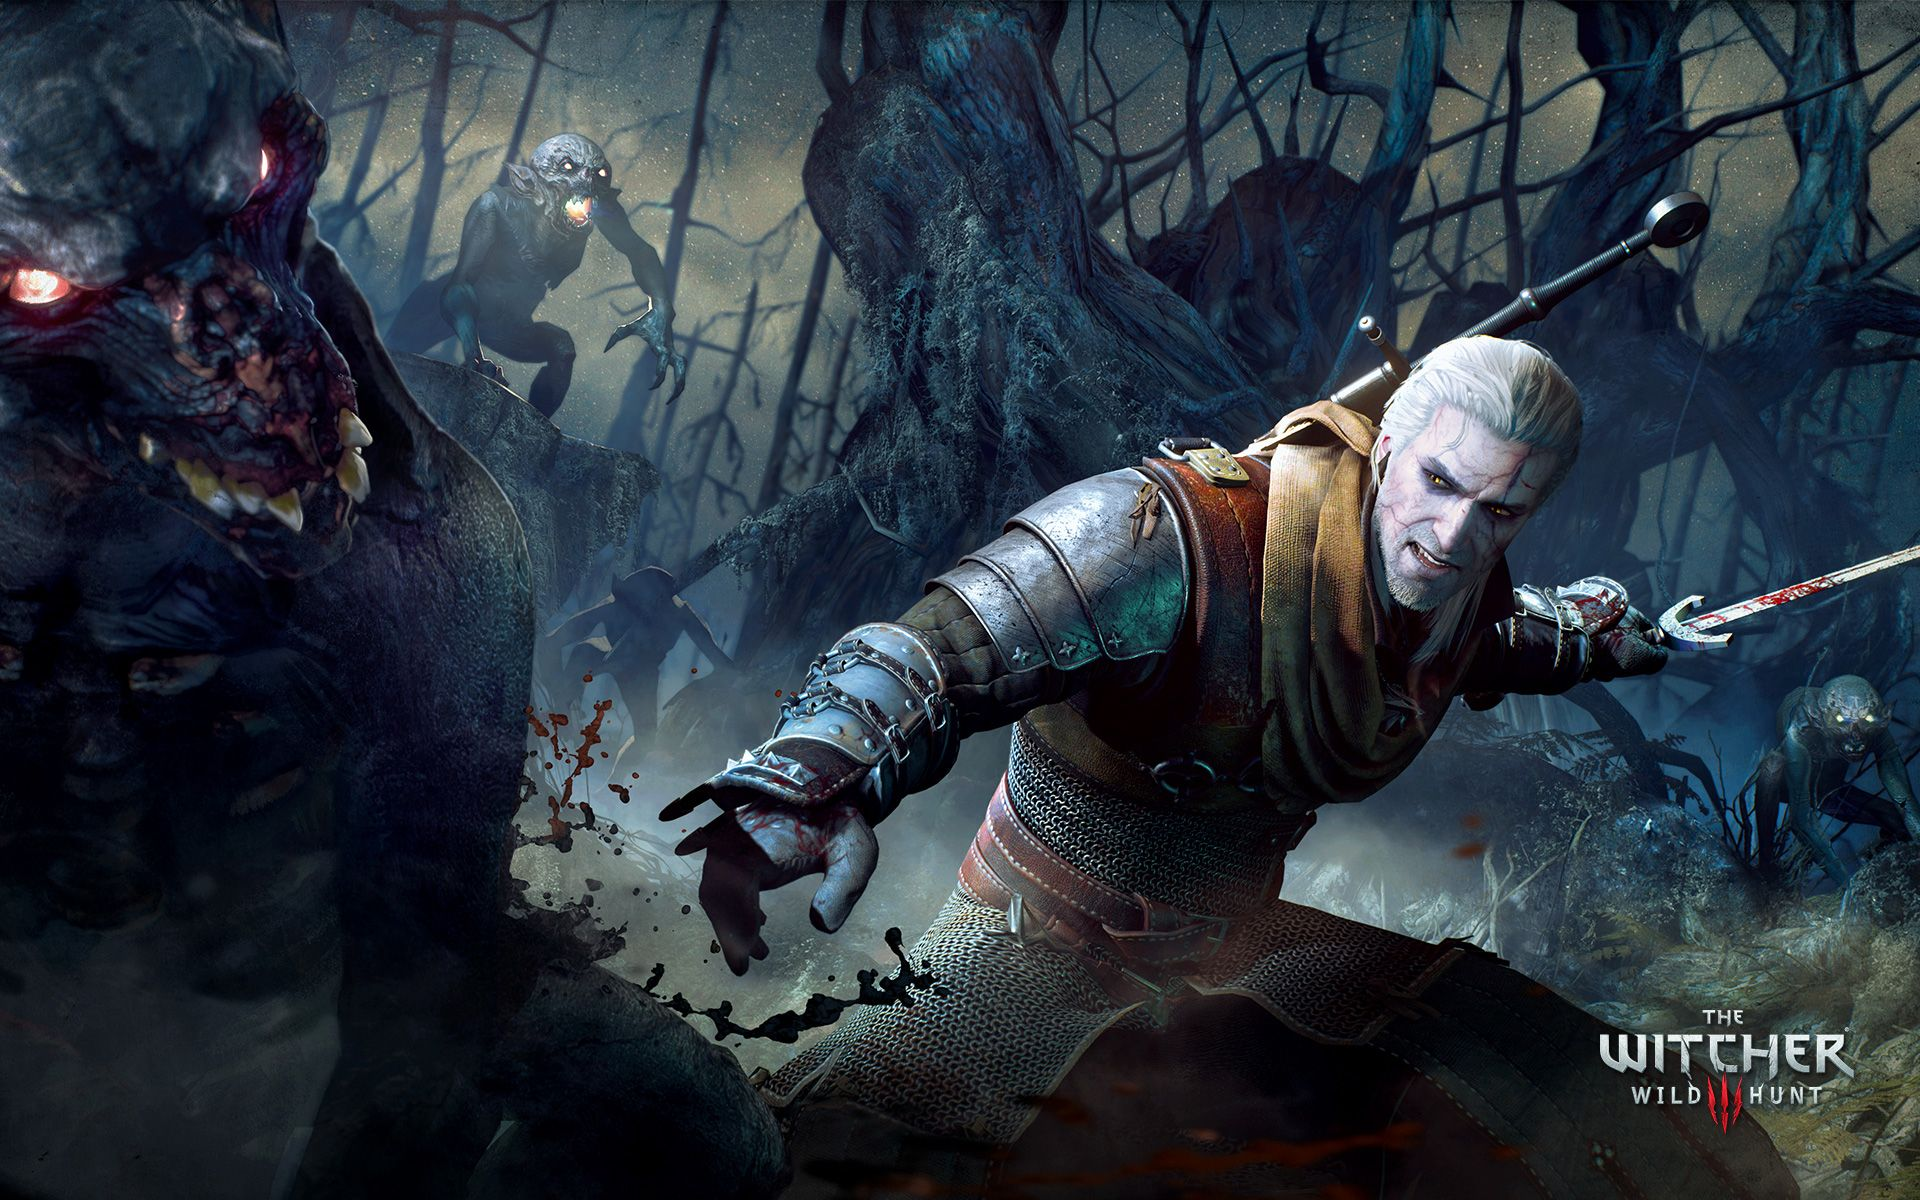 Witcher 3 Wallpaper Hd: The Witcher Wild Hunt Dancer Wallpapers HD Wallpapers 1920